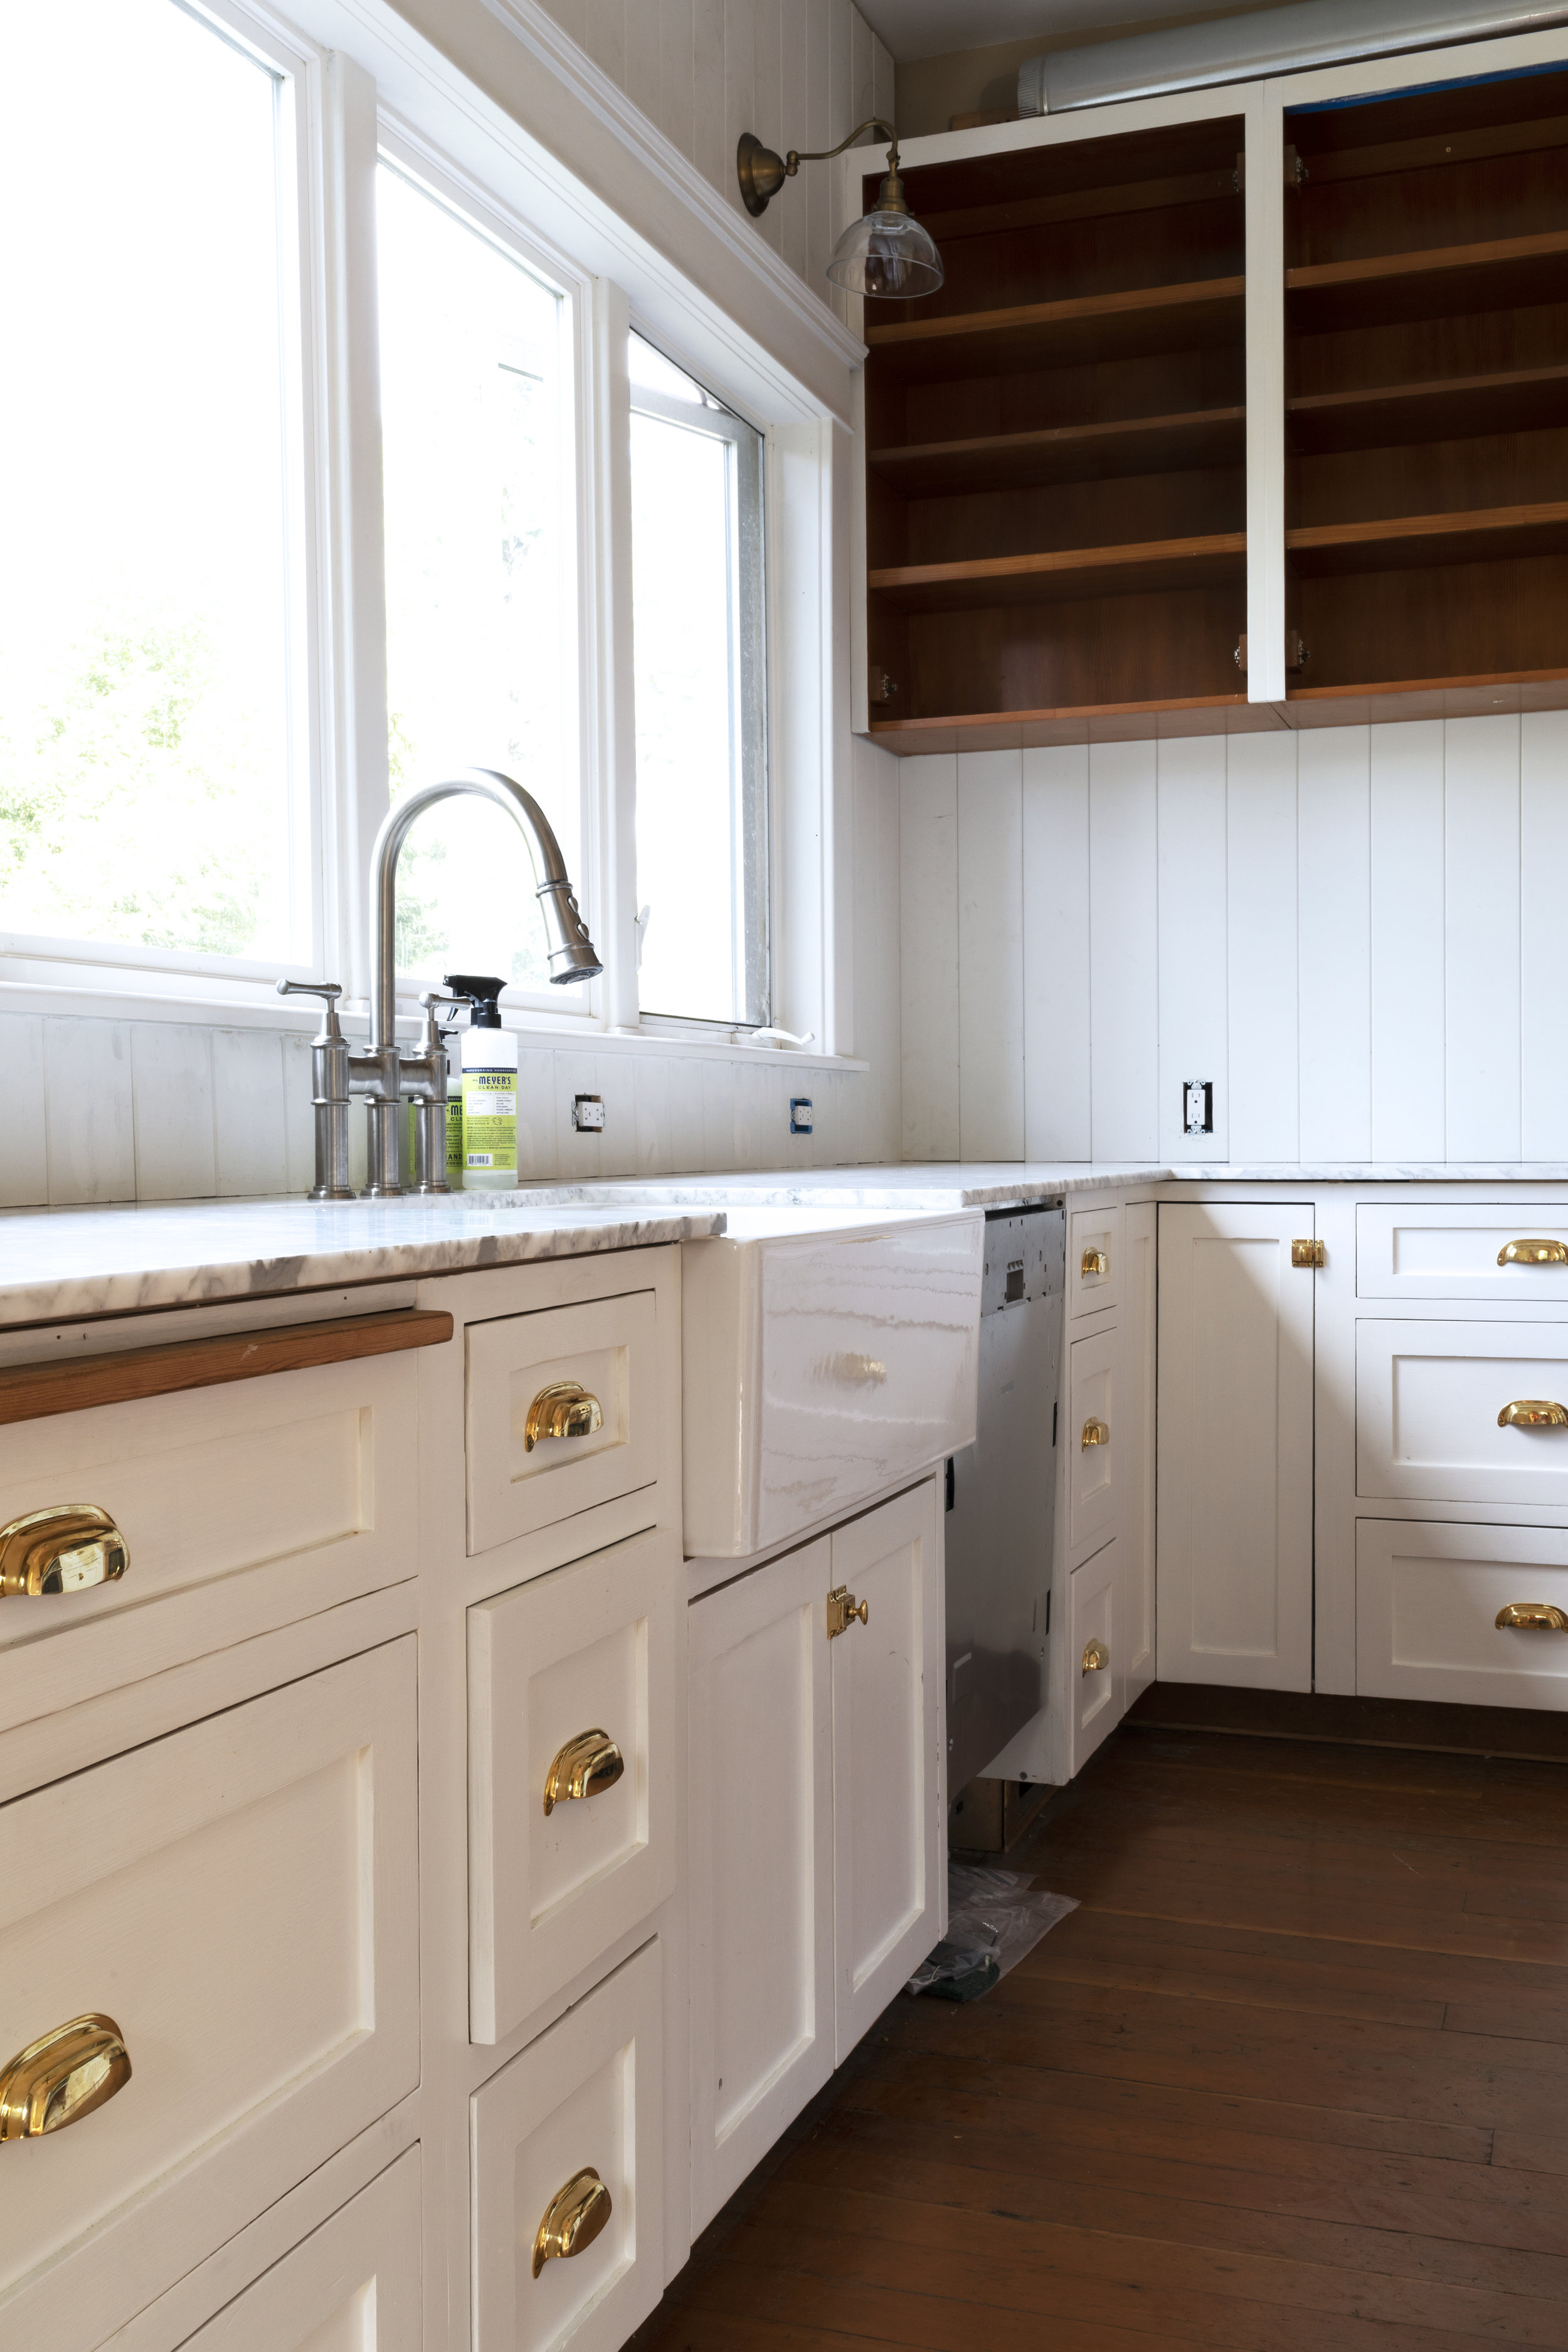 The Grit and Polish - Farmhouse 08-24 Kitchen Update Sink 2.jpg